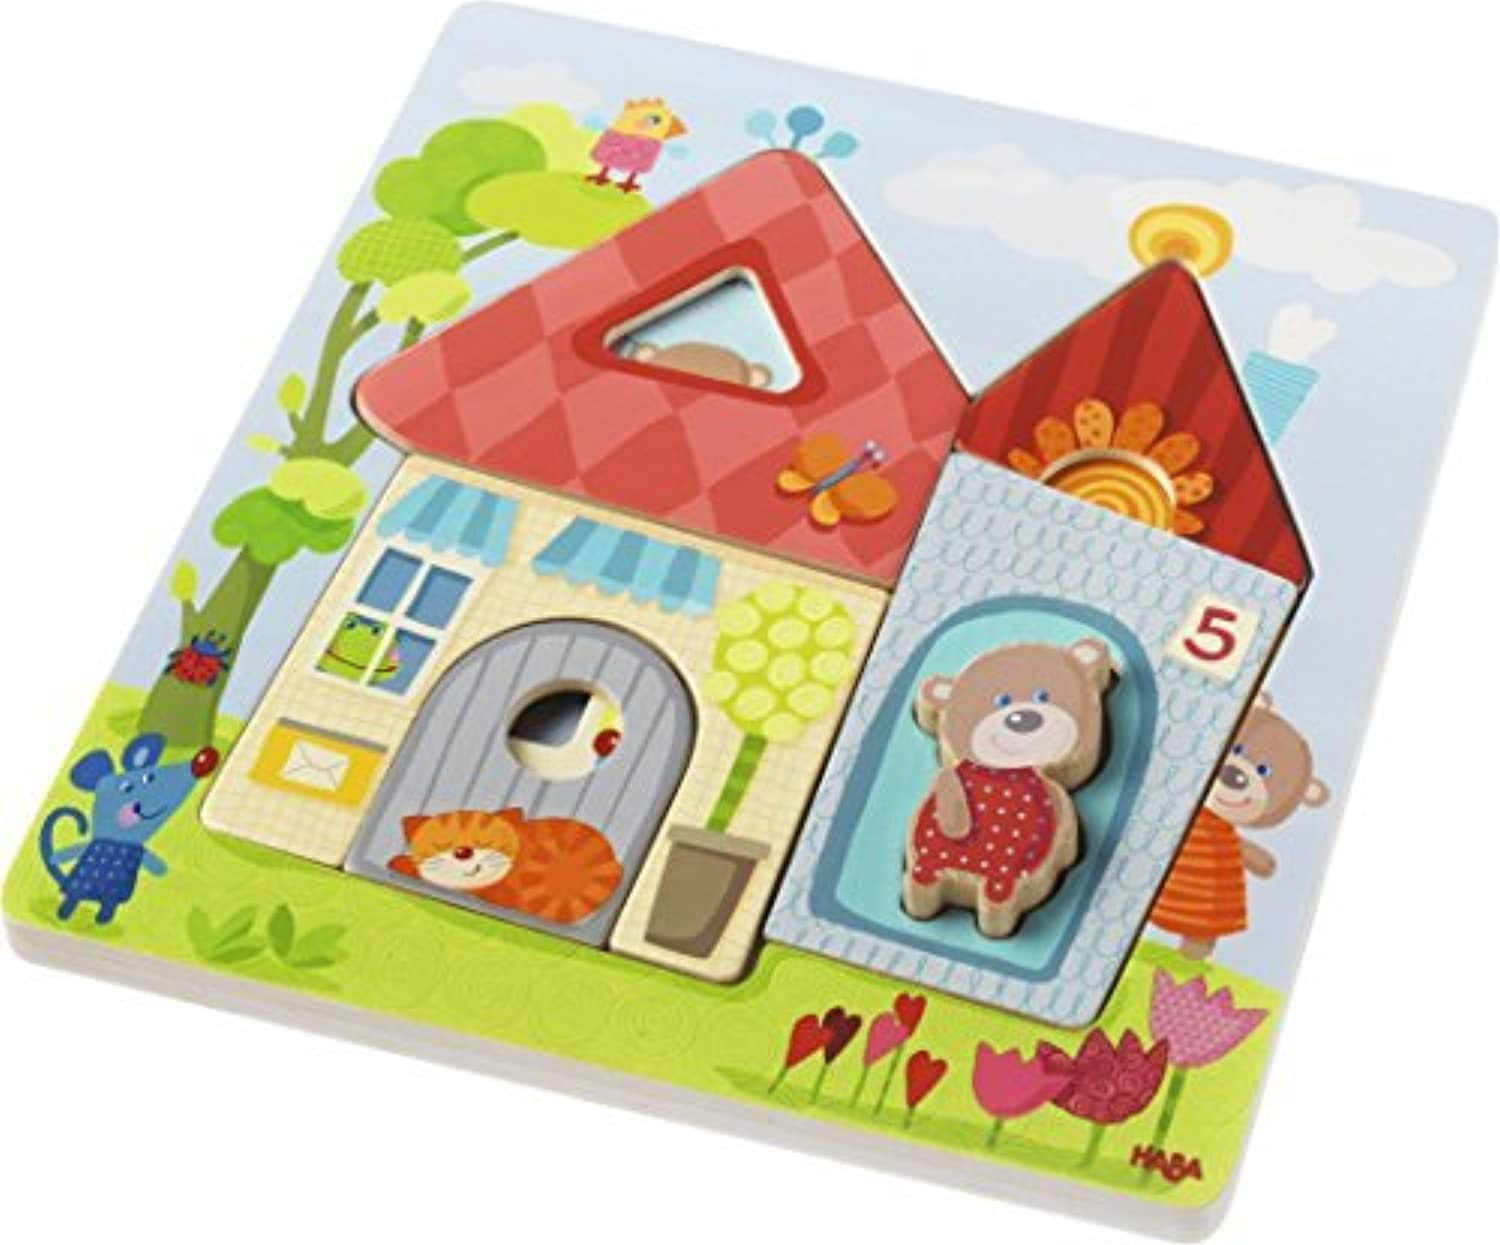 HABA Wooden Puzzle Bear House  10 Piece Layered Puzzle for Ages 18 Months and Up by HABA